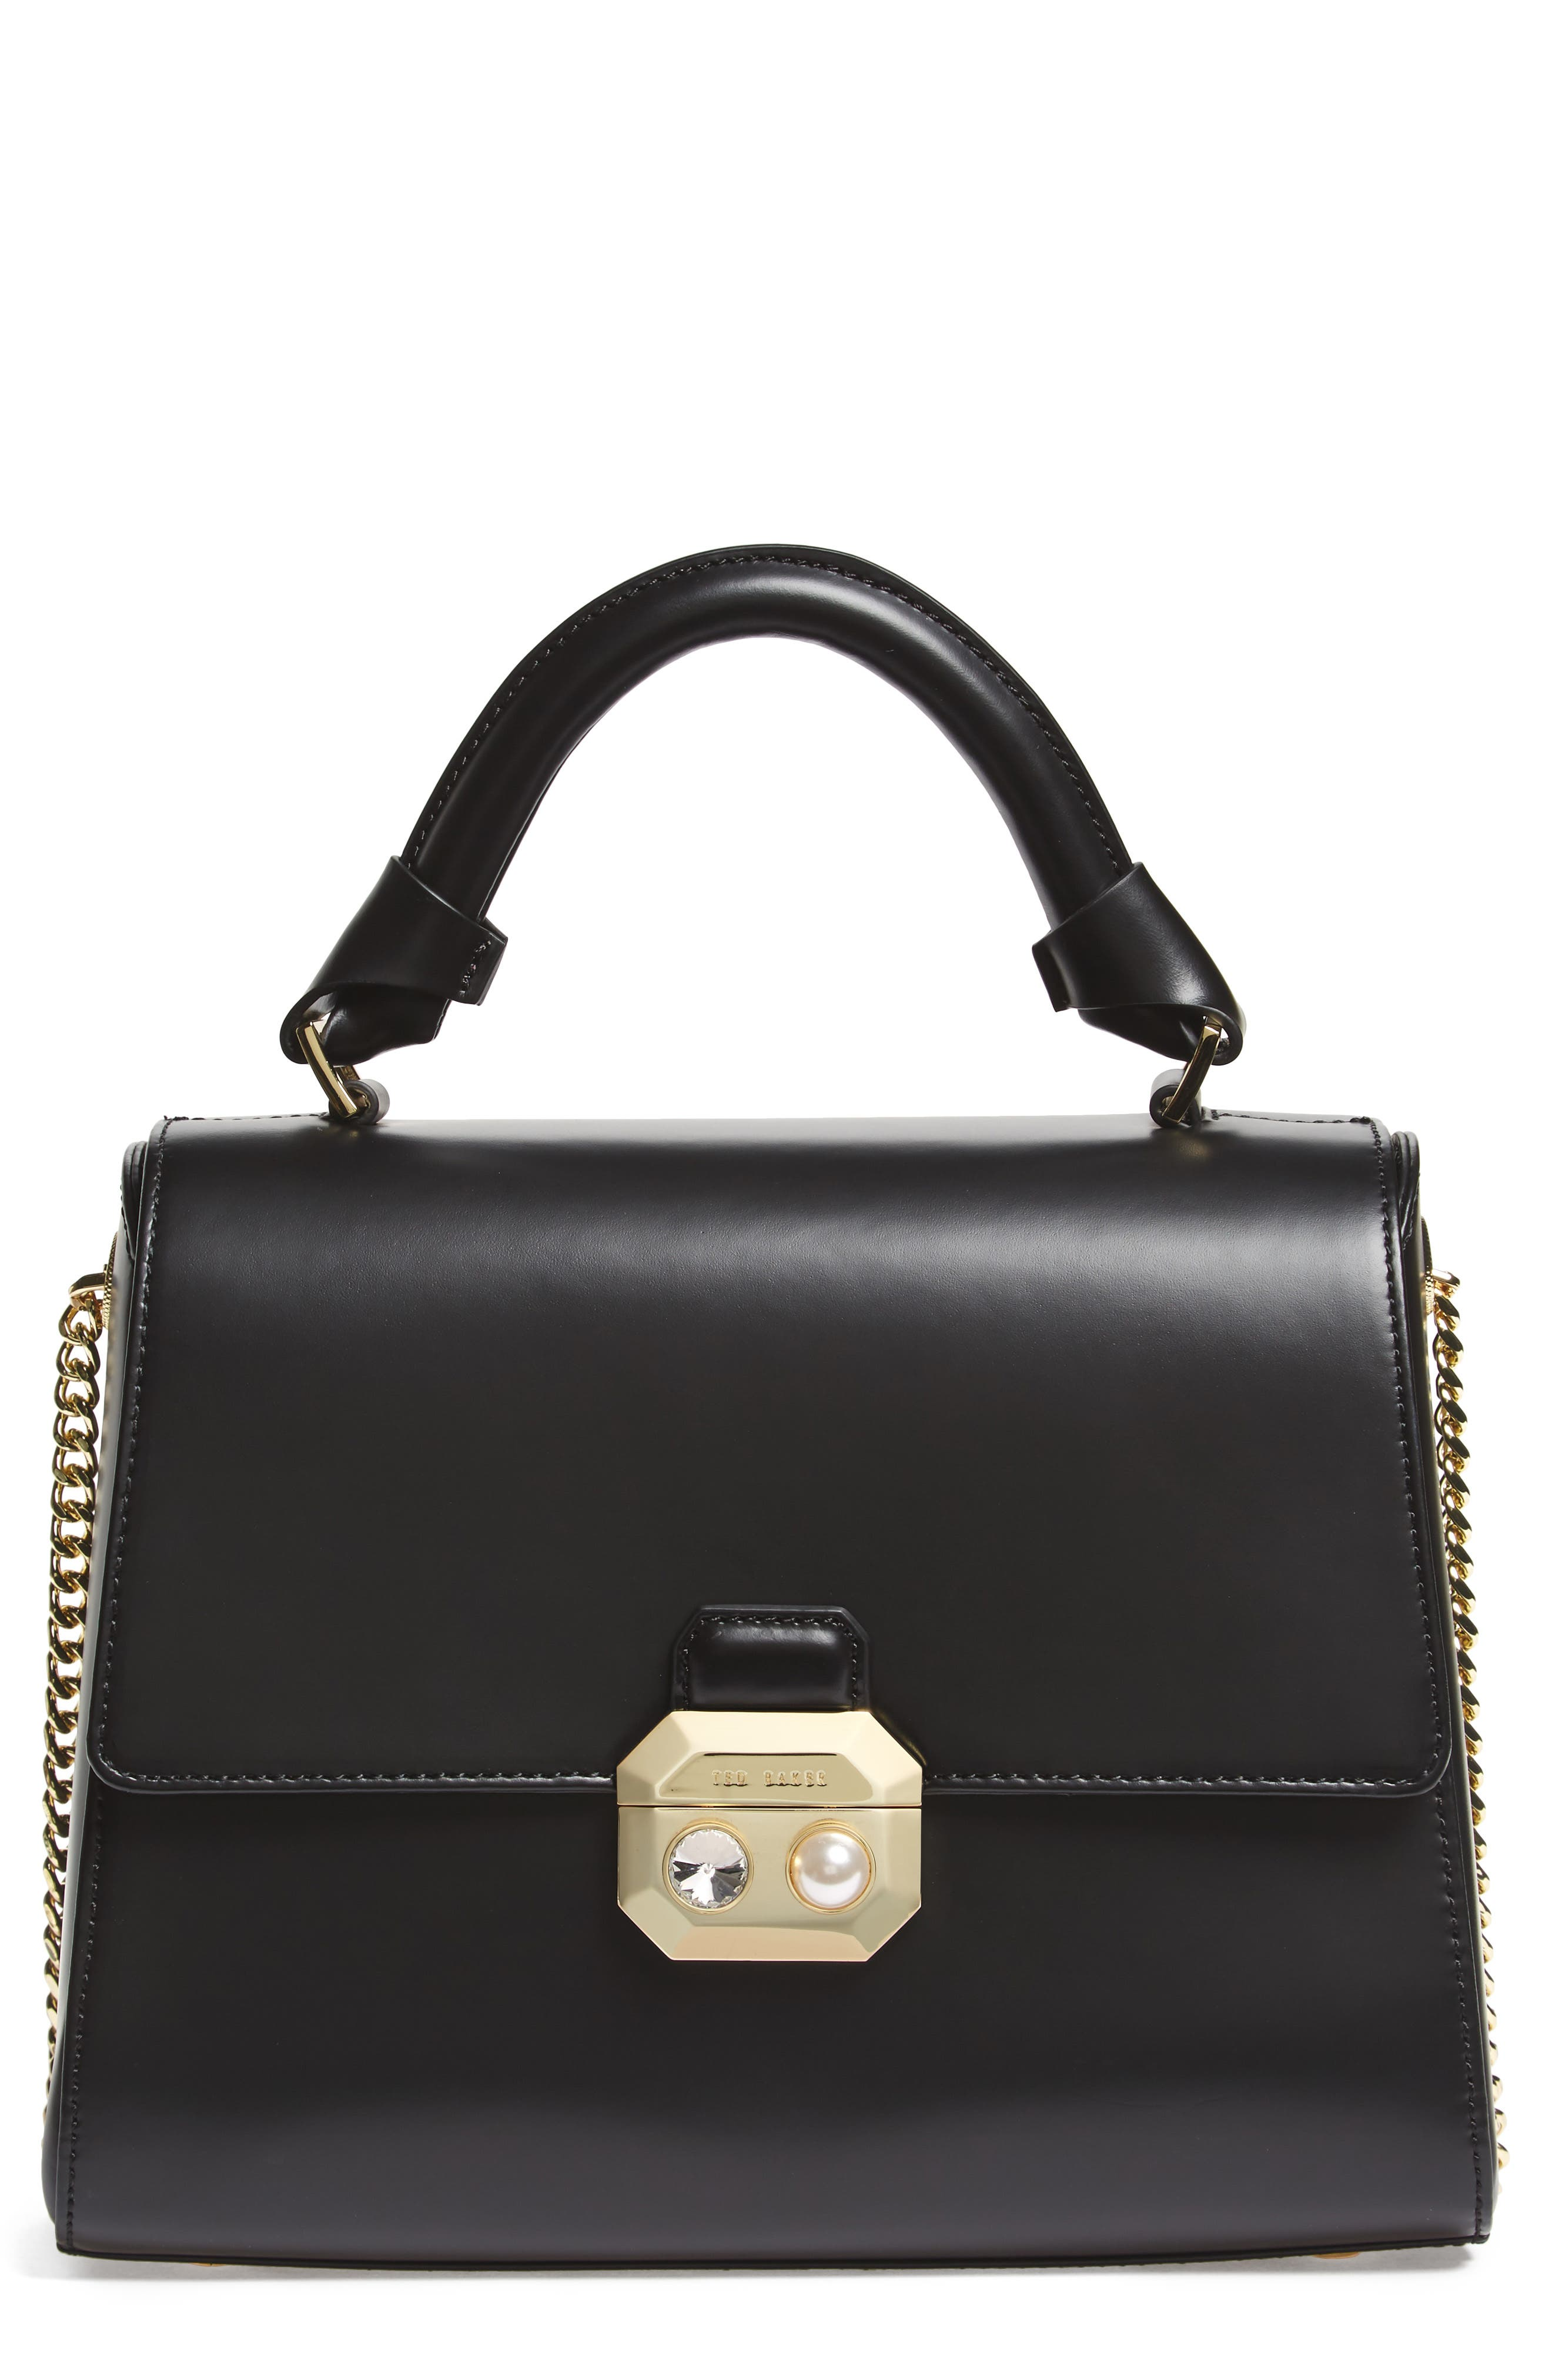 Alternate Image 1 Selected - Ted Baker London Leather Top Handle Satchel